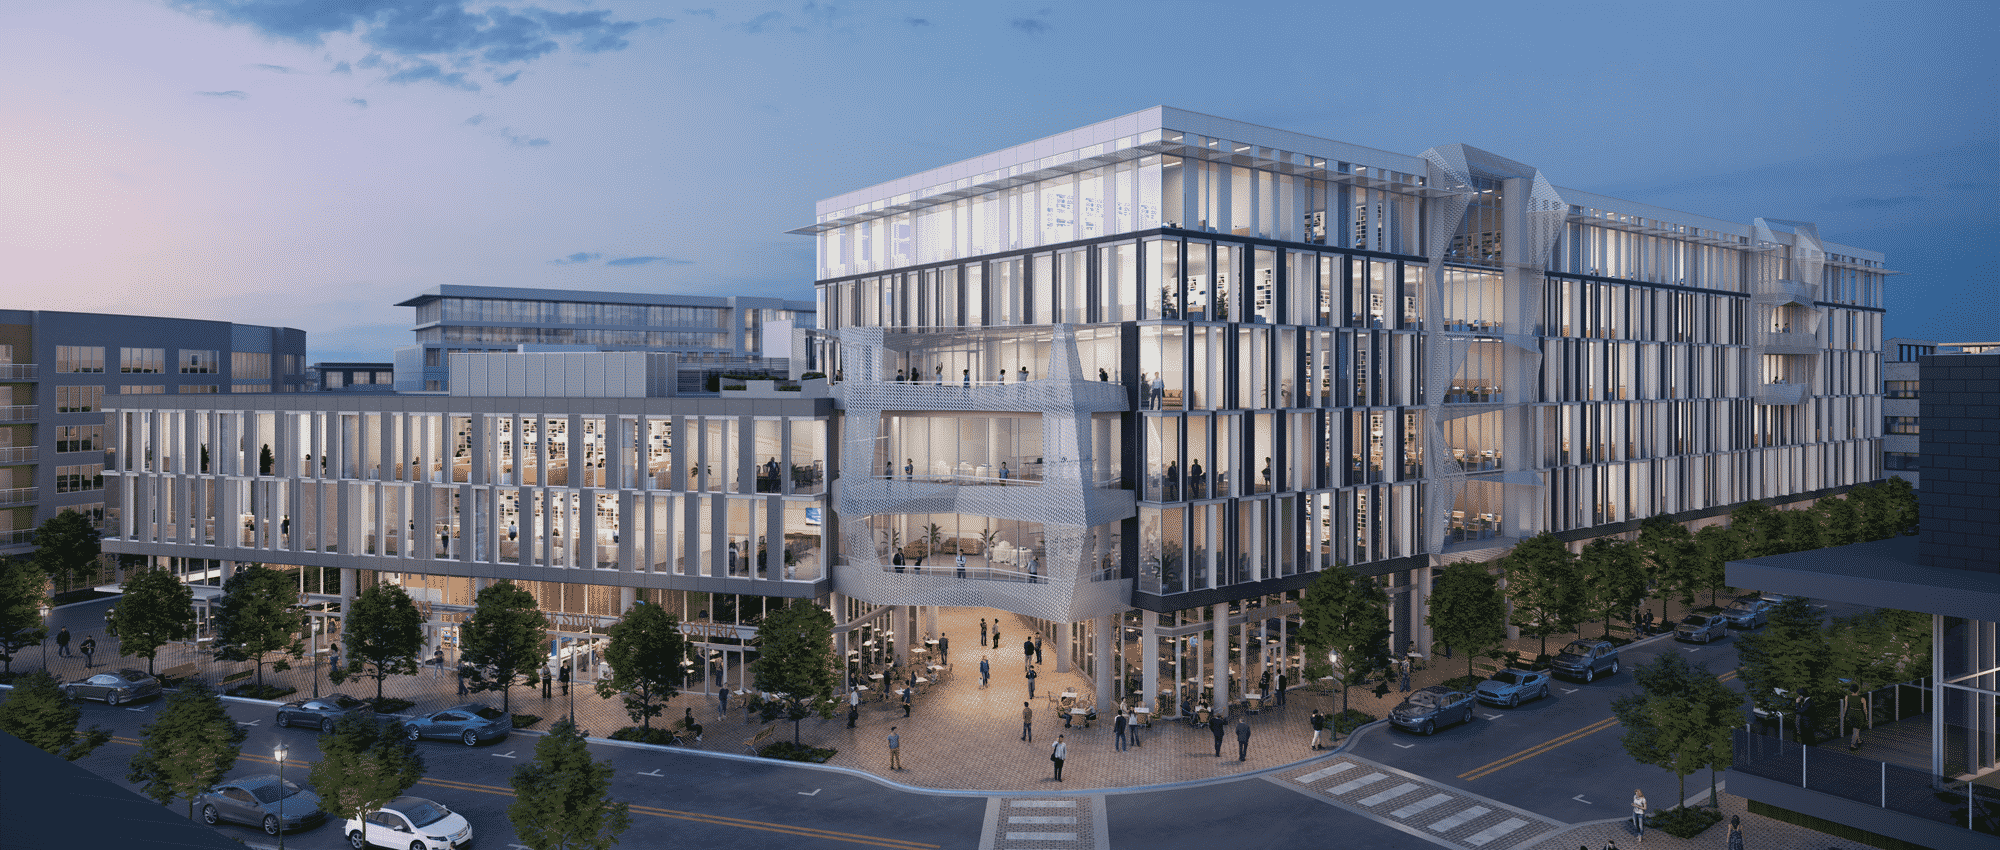 Mueller Business District | central austin buildings 2021